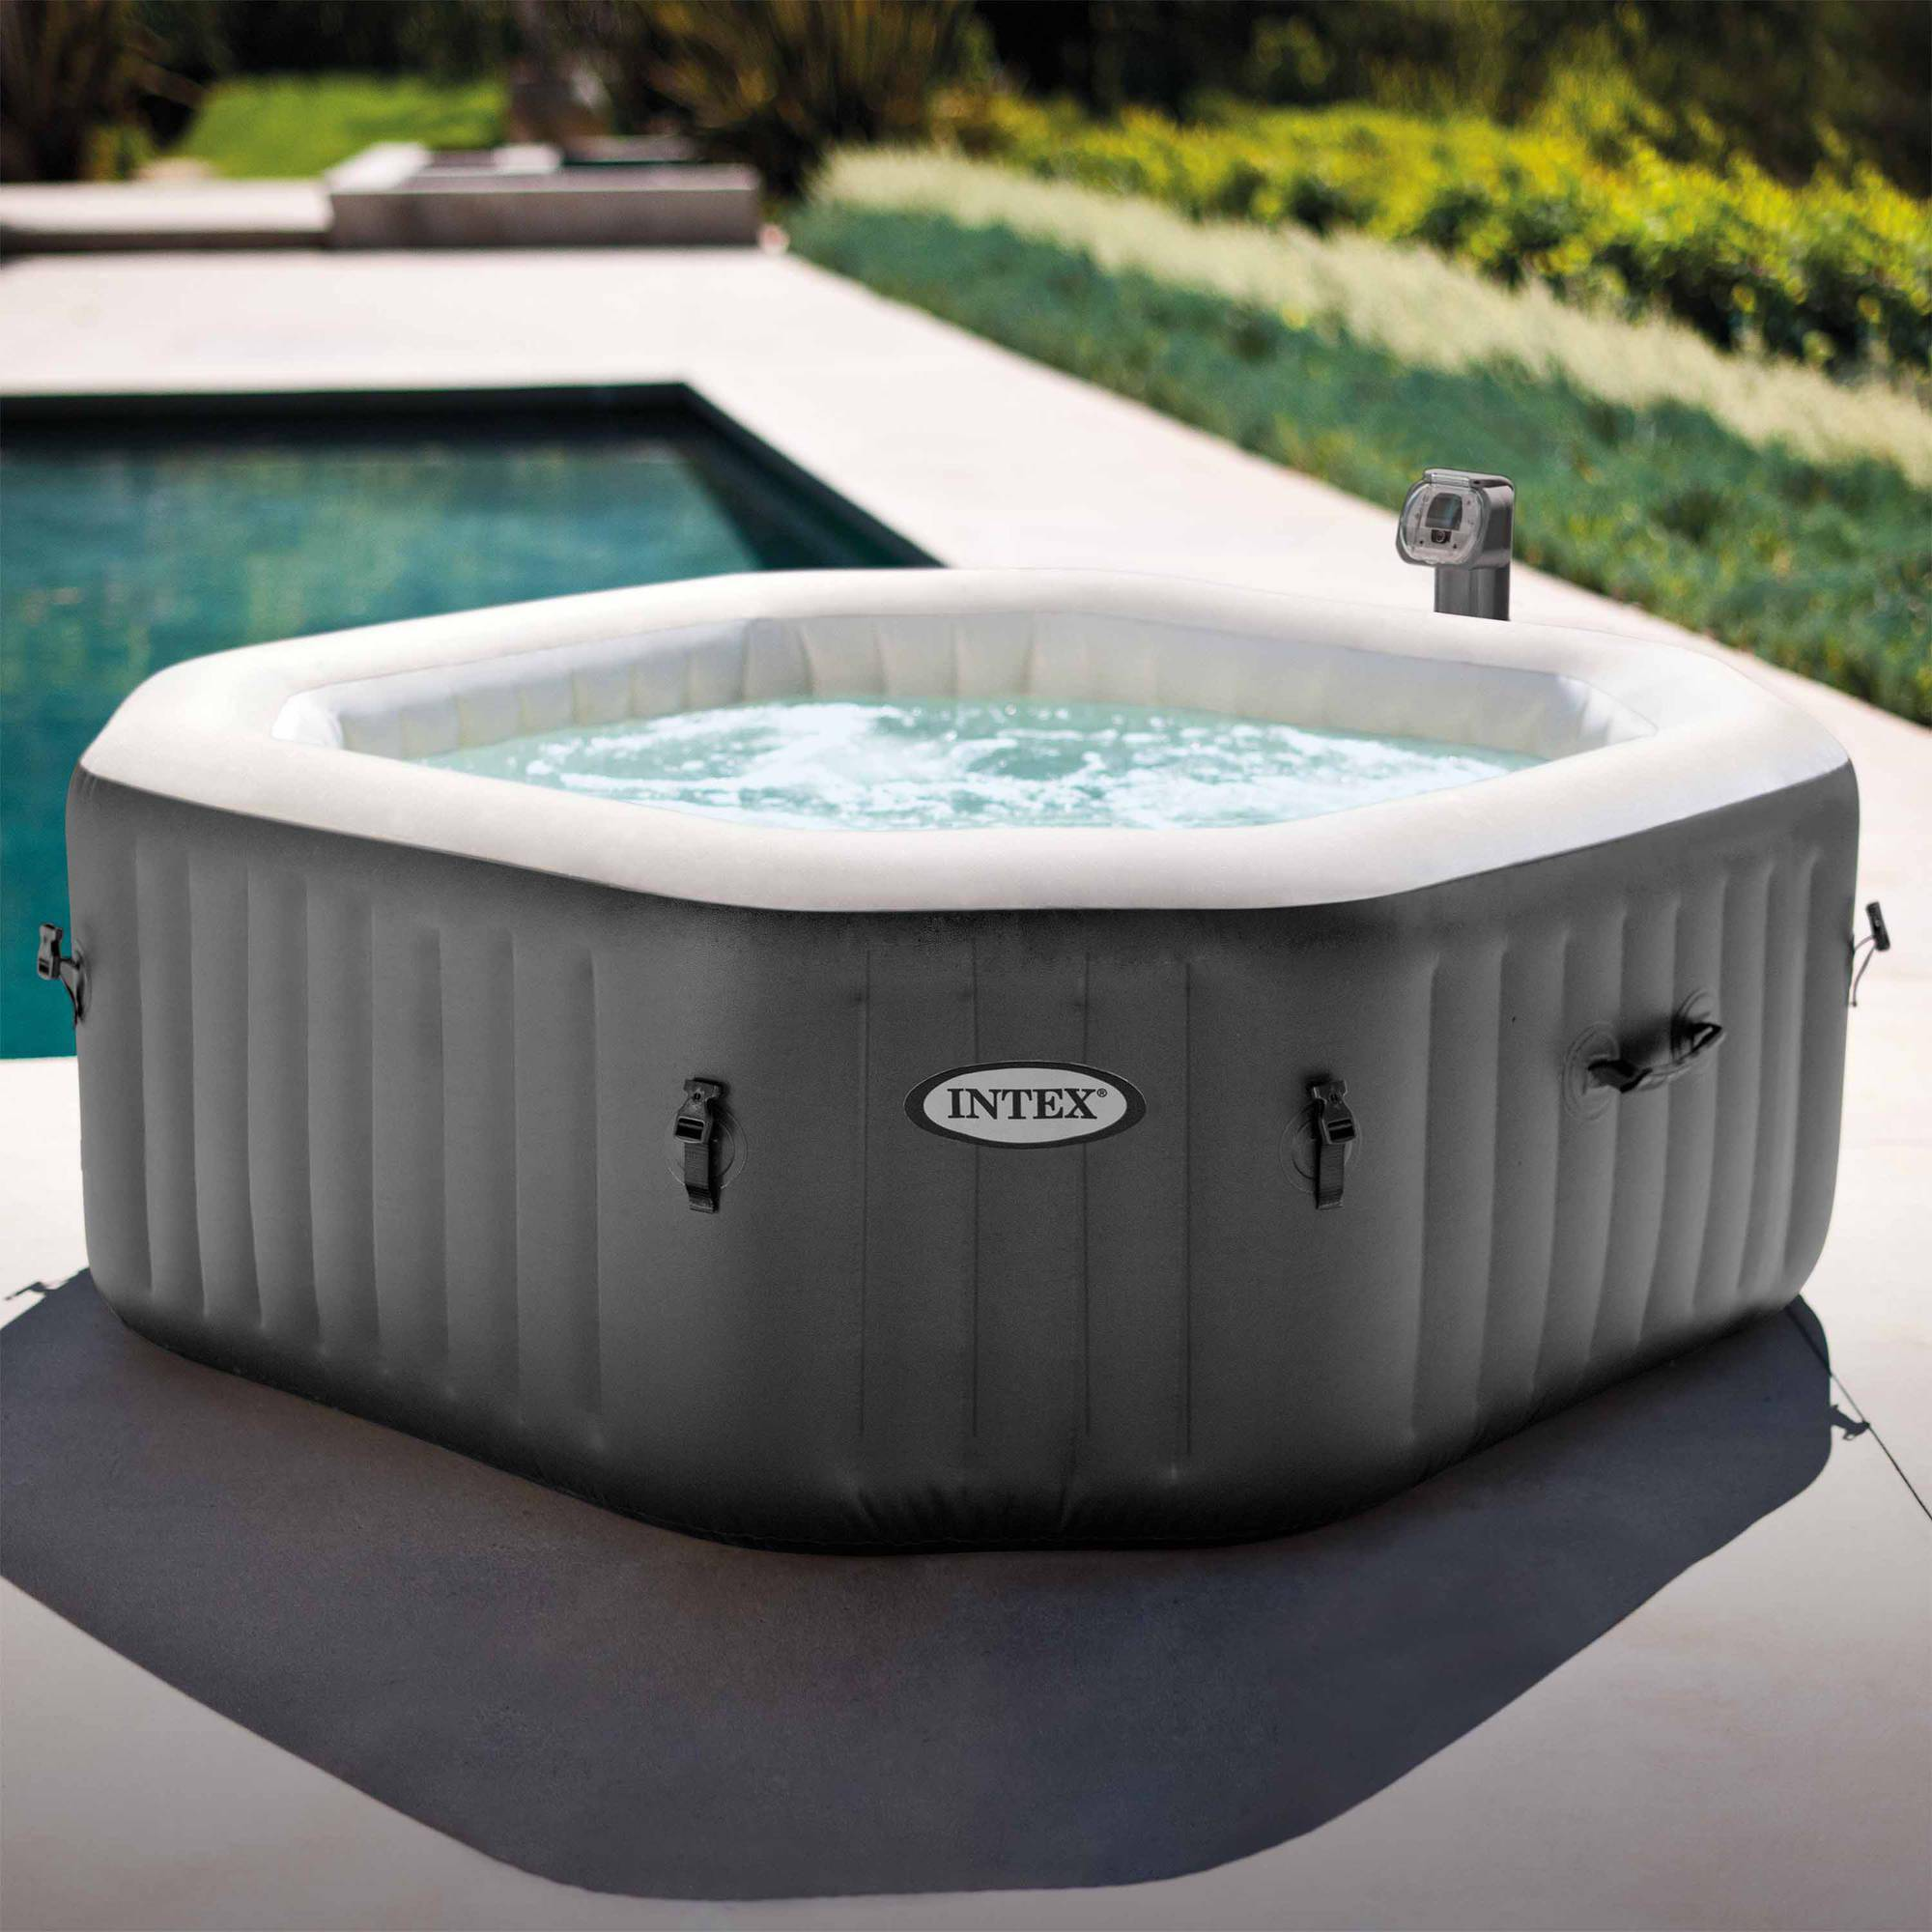 Intex 120 Bubble Jets 4-Person Octagonal Portable Inflatable Hot Tub ...